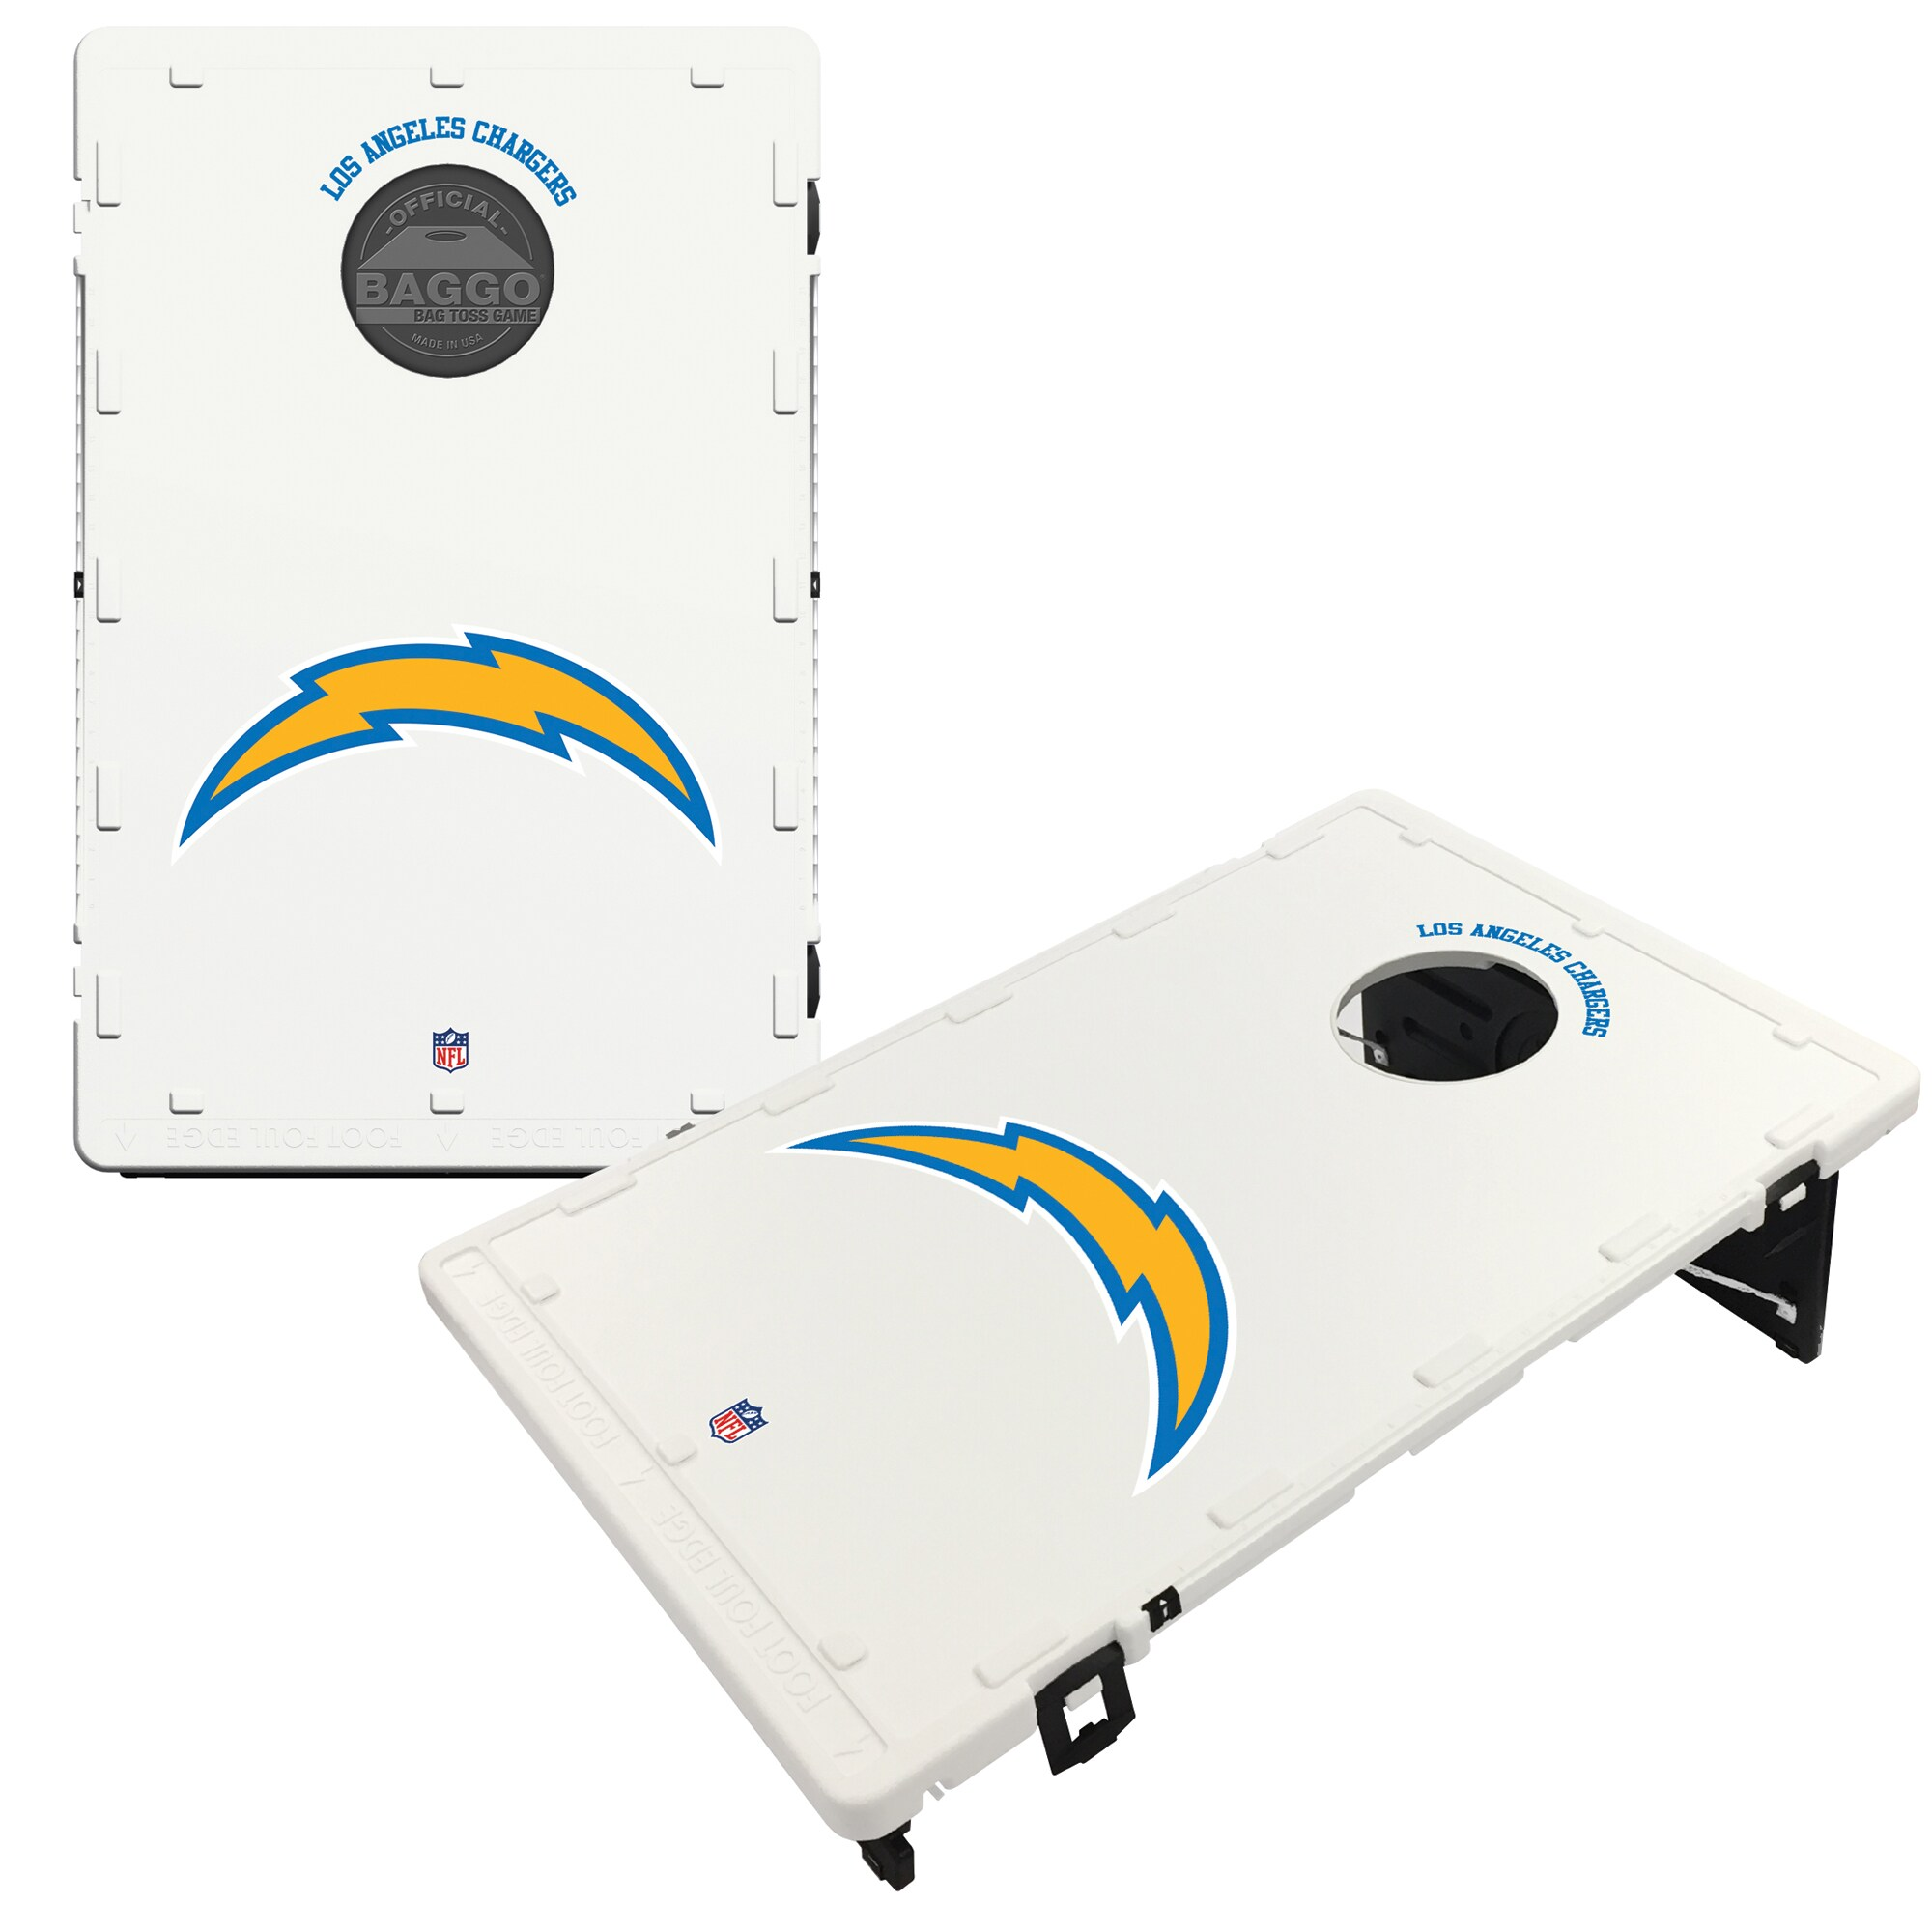 Los Angeles Chargers 2' x 3' Classic Design BAGGO Cornhole Board Tailgate Toss Set